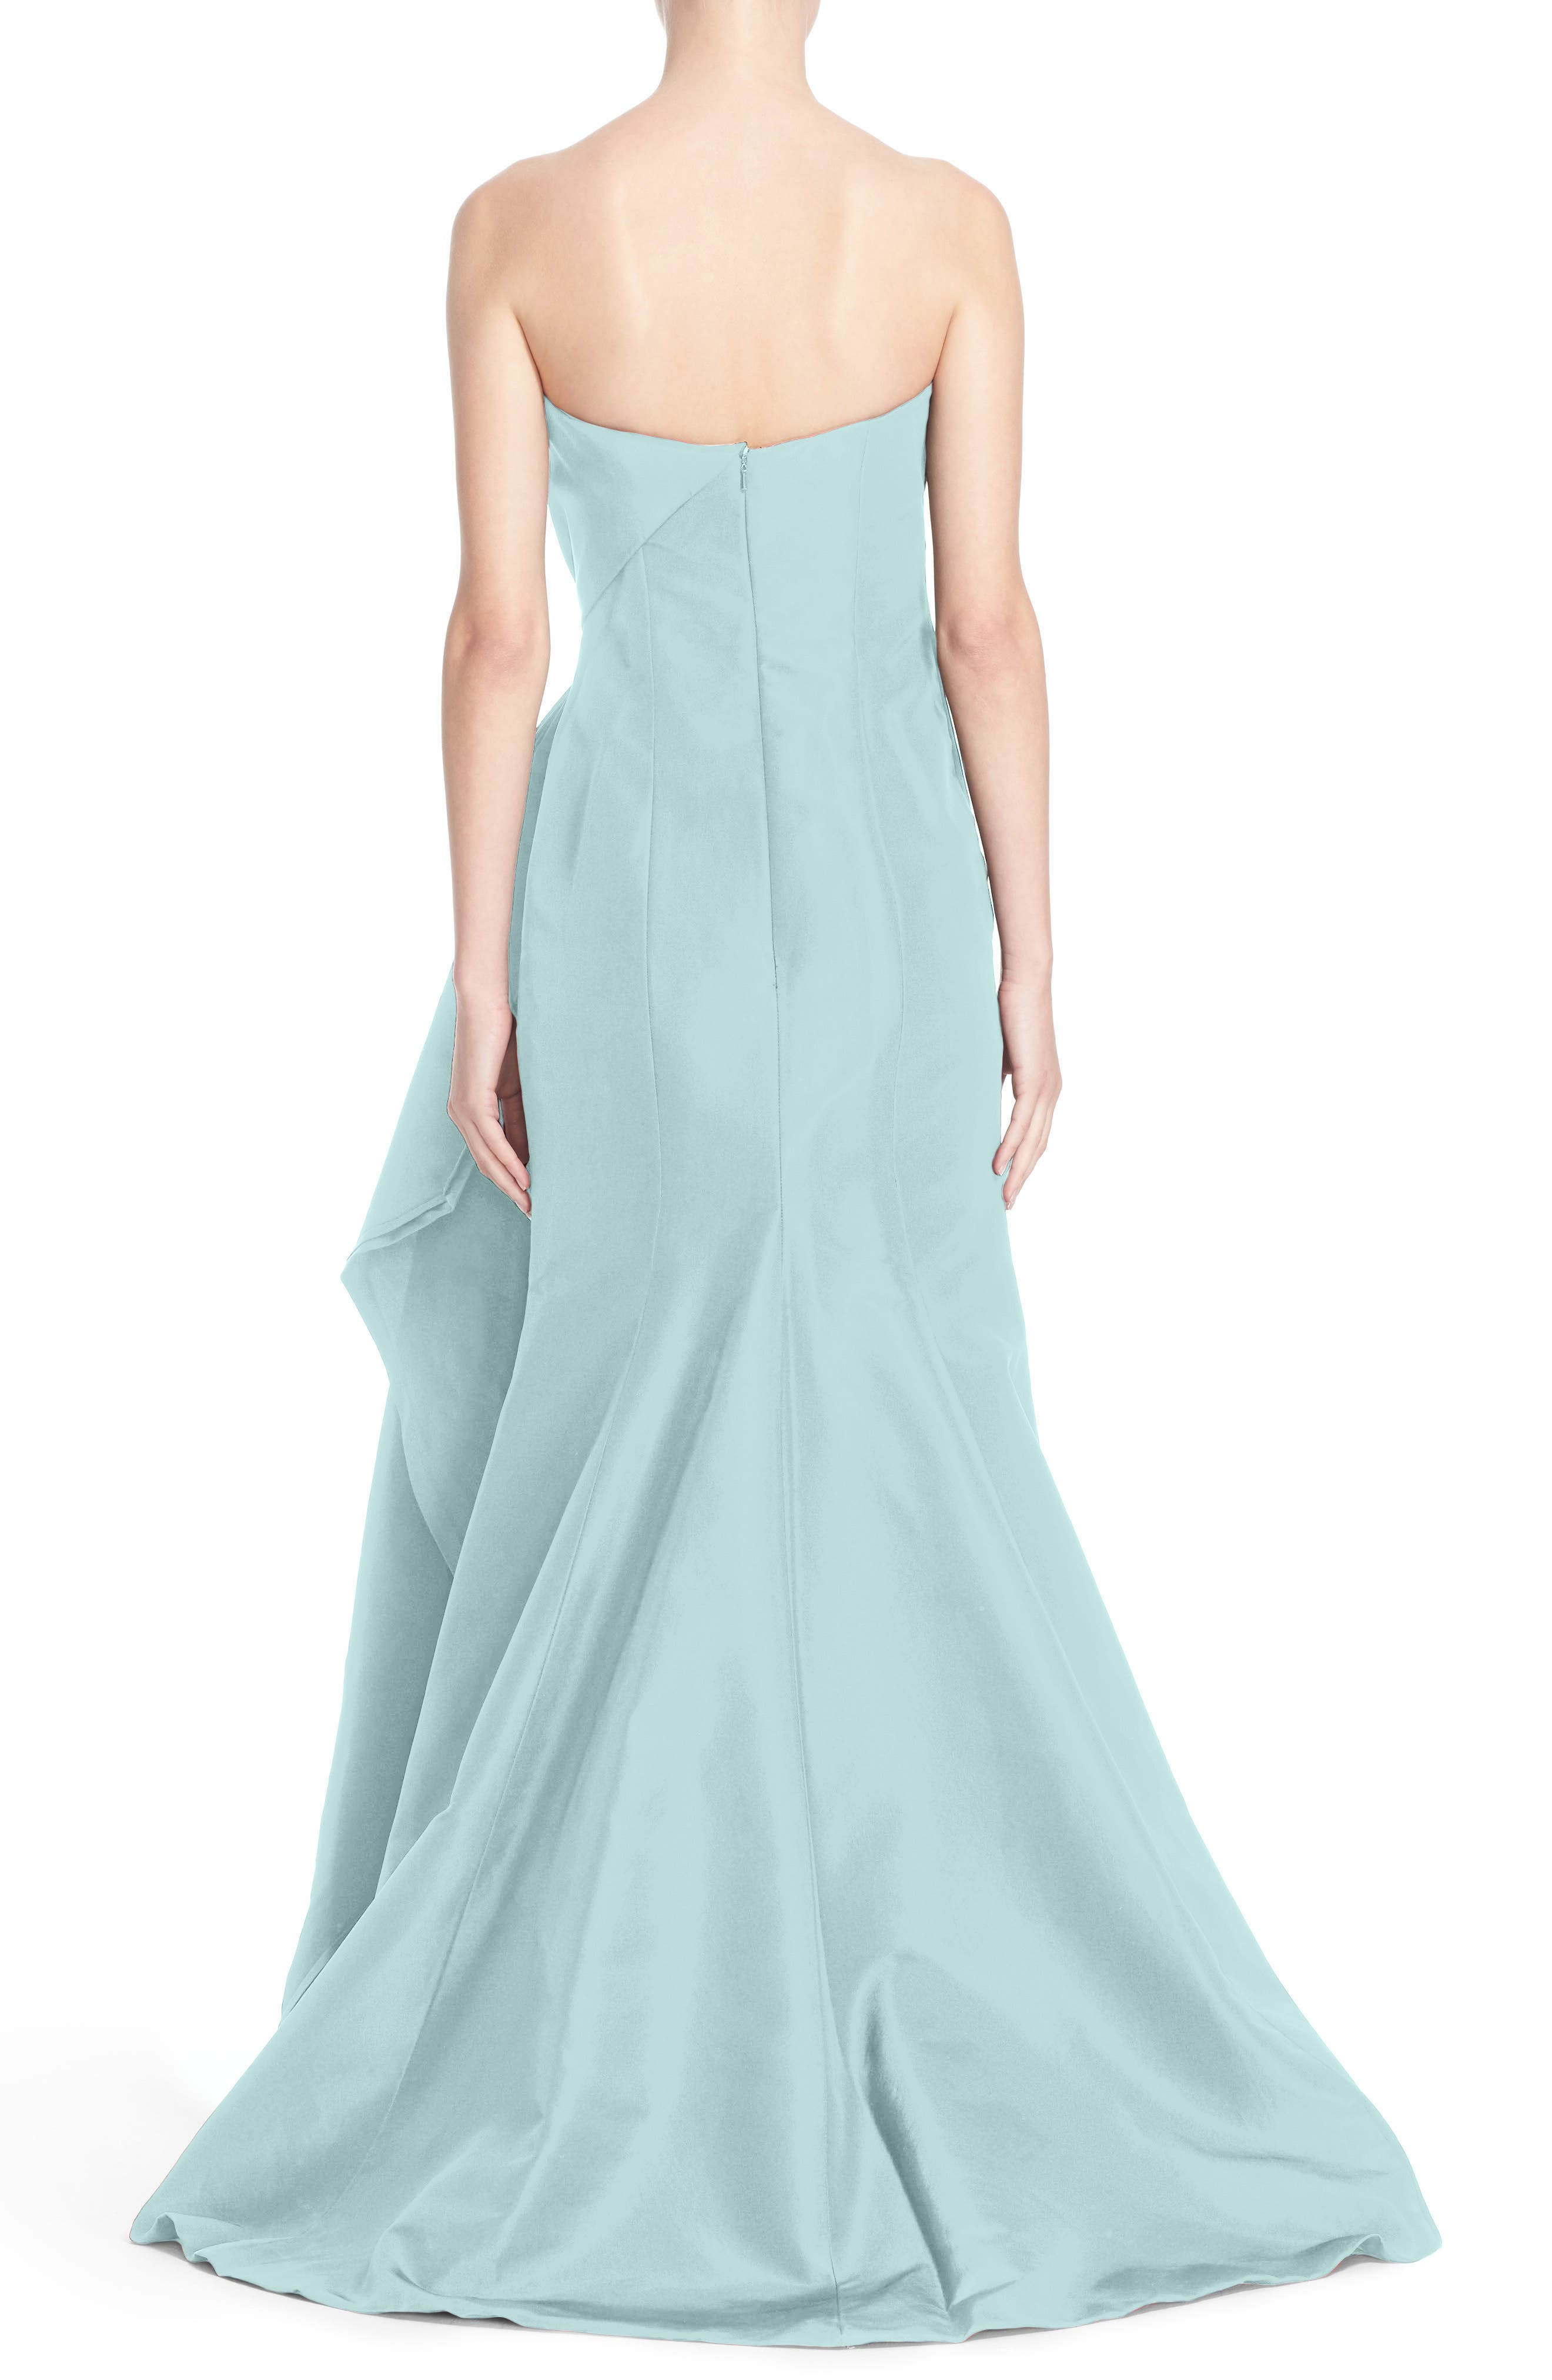 Alternate Image 2  - Carolina Herrera Bow Detail Strapless Silk Faille Gown